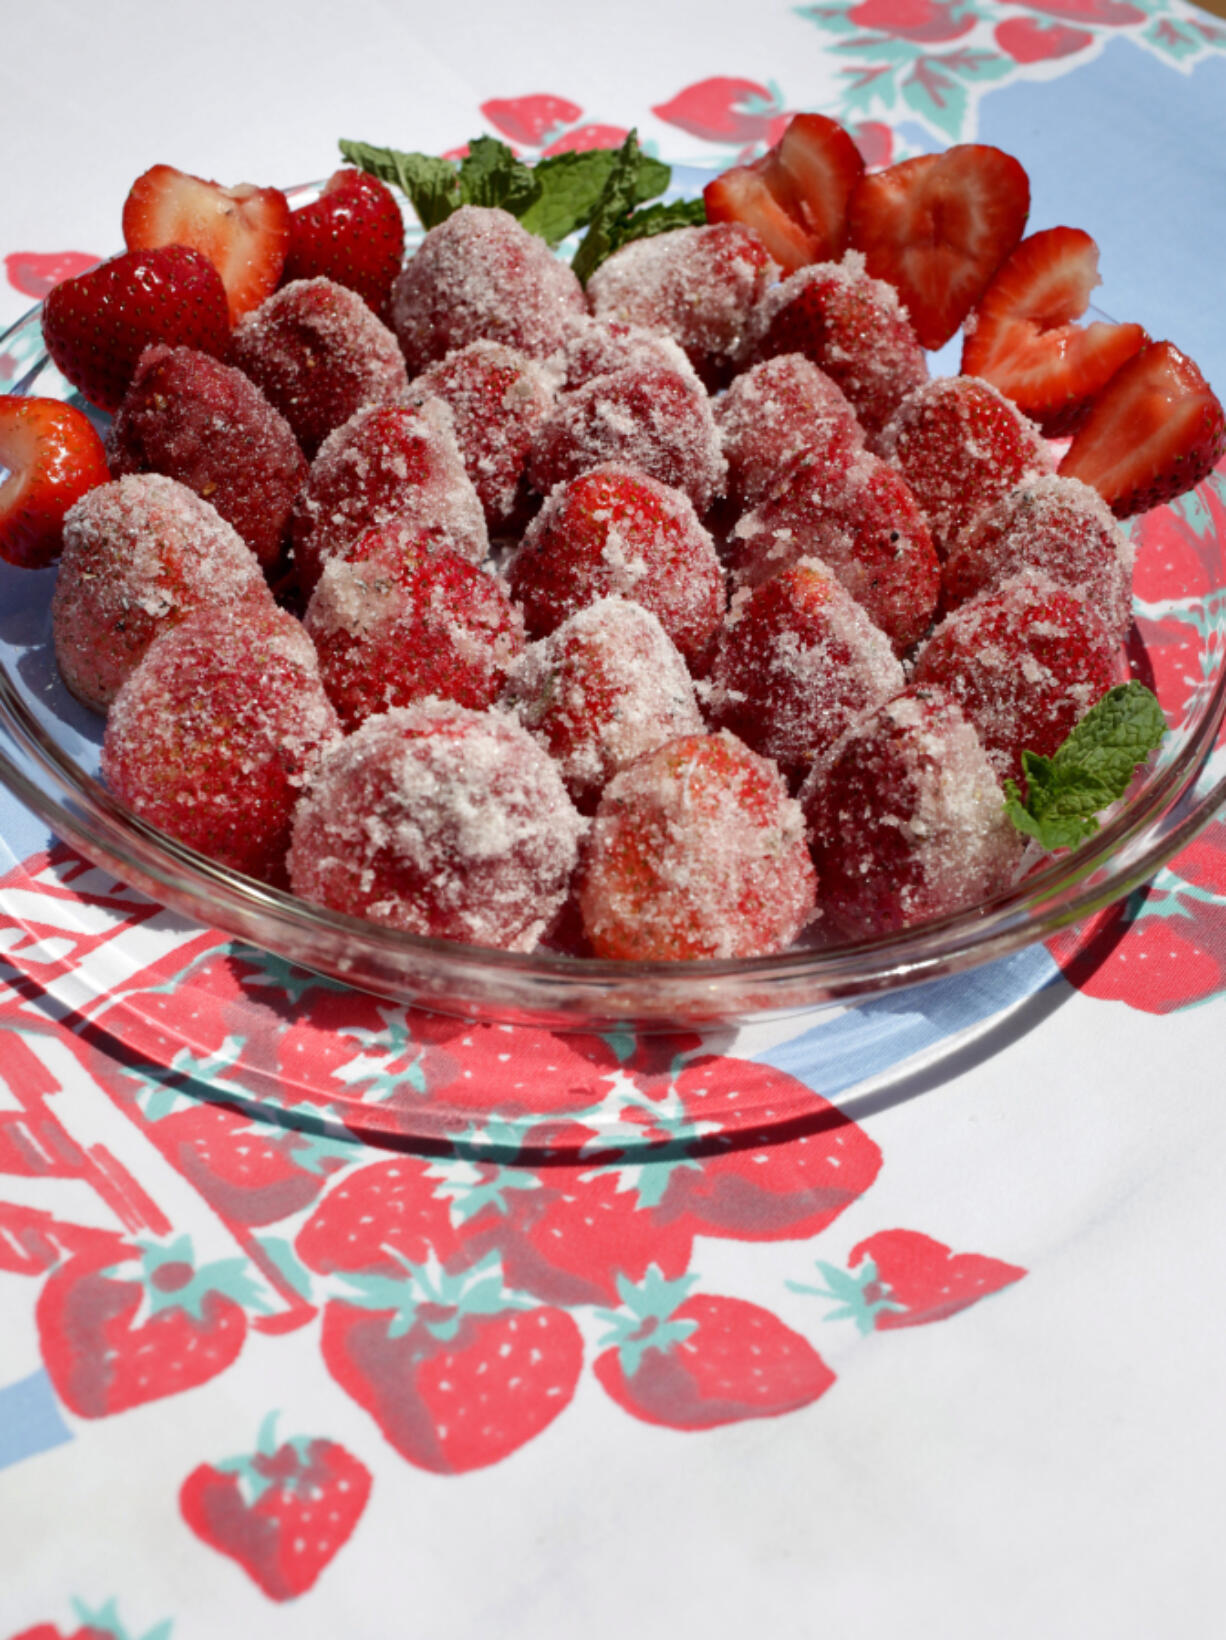 Strawberries Dusted With Cardamom Sugar. (Photos by Hillary Levin/St.